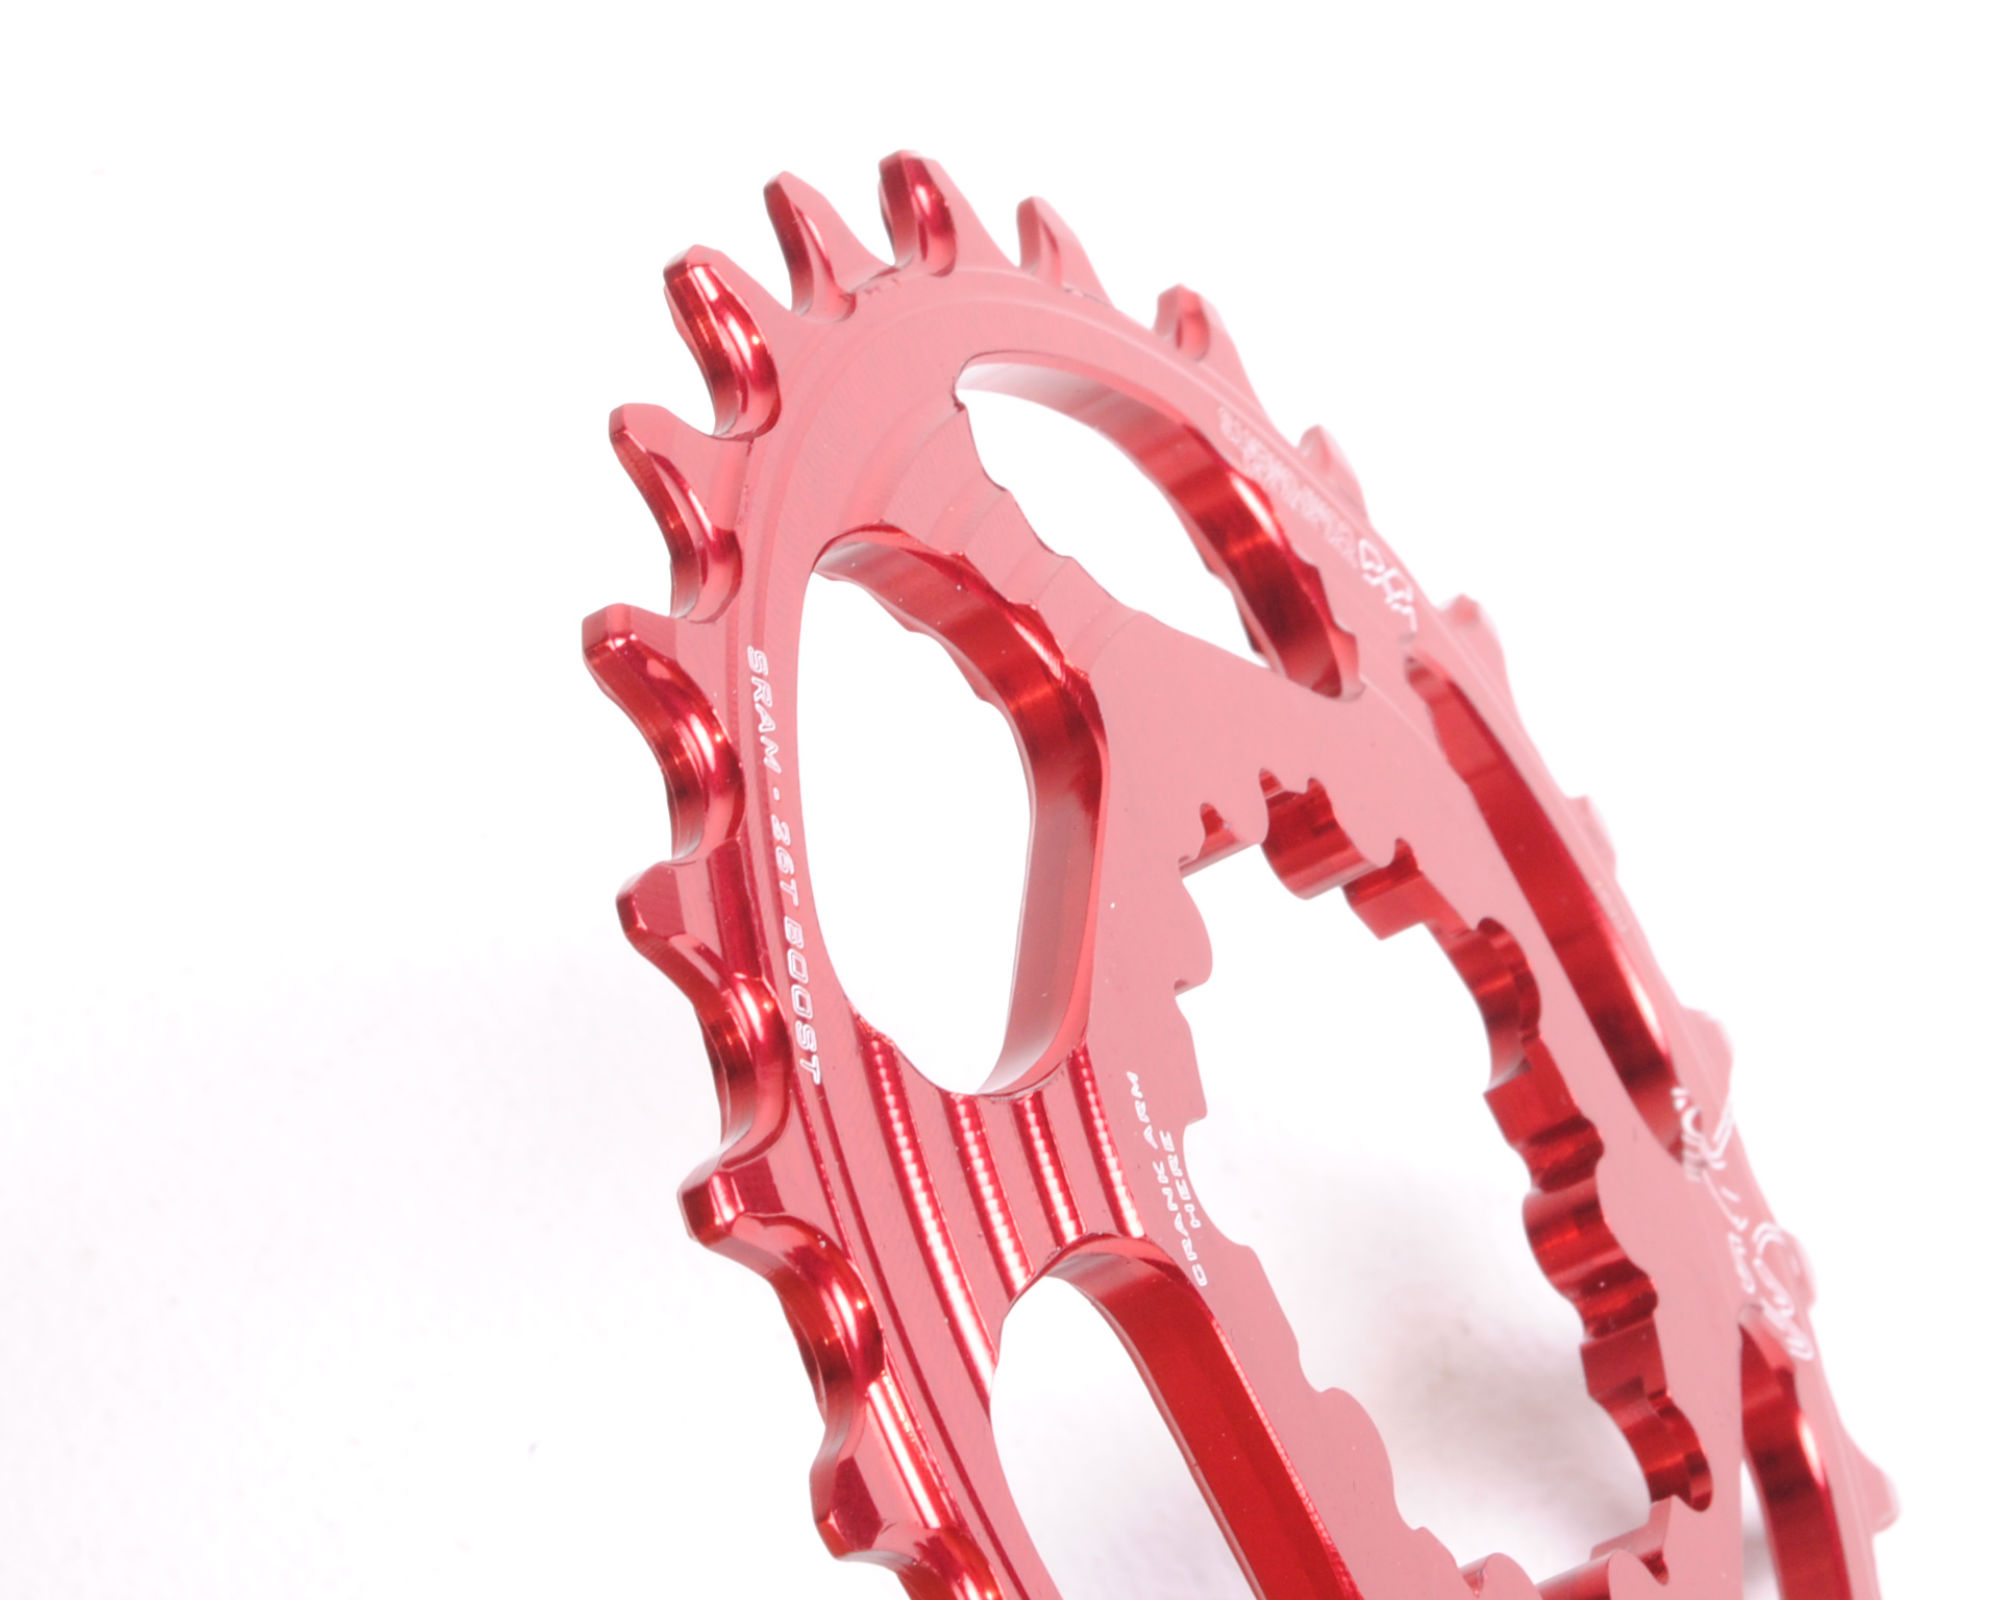 Narrow Wide Chainrings - Manufactured to custom designs from precision rolled Austrian AMAG 7075 T651 material with a choice of tooth profiles.MOQ - 100 p/size/modelPrice: Asia competitive